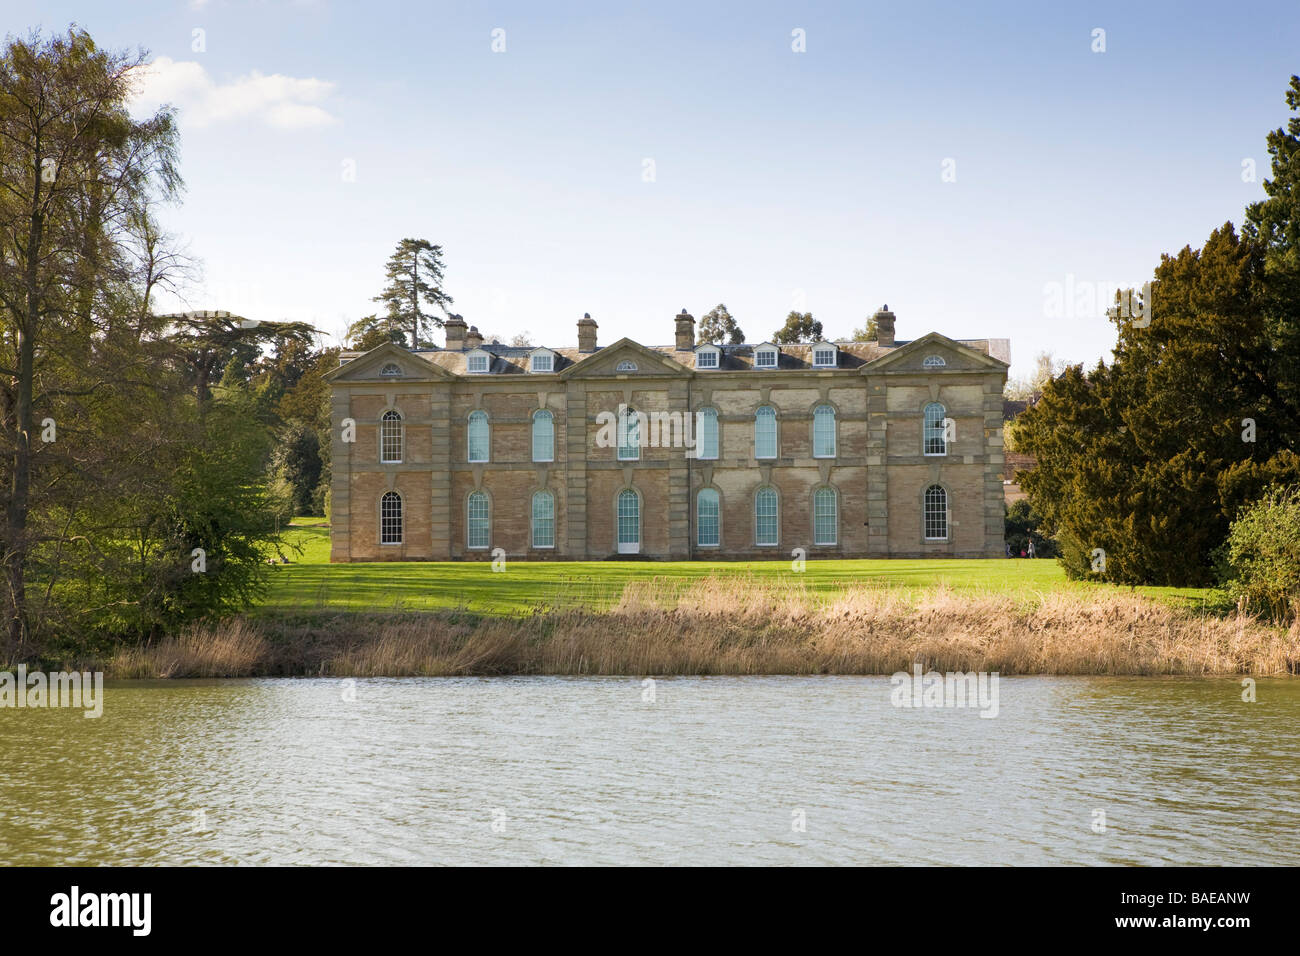 Compton Verney art gallery, Warwickshire. A Robert Adam designed grade 1 listed building set in 120 acres of parkland. - Stock Image